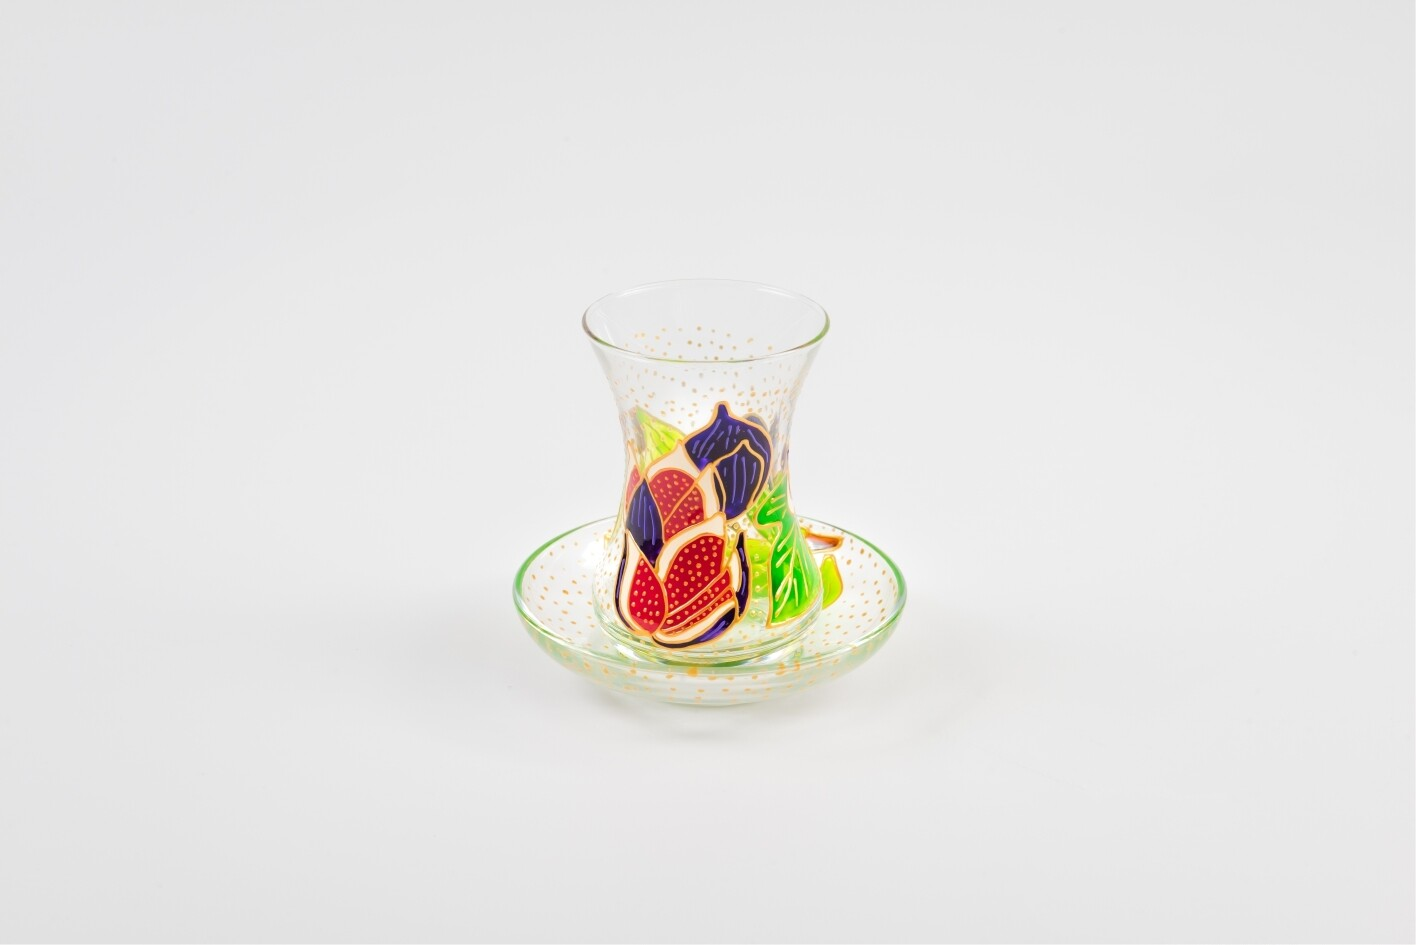 Armudu glass -Mediterranean Figs